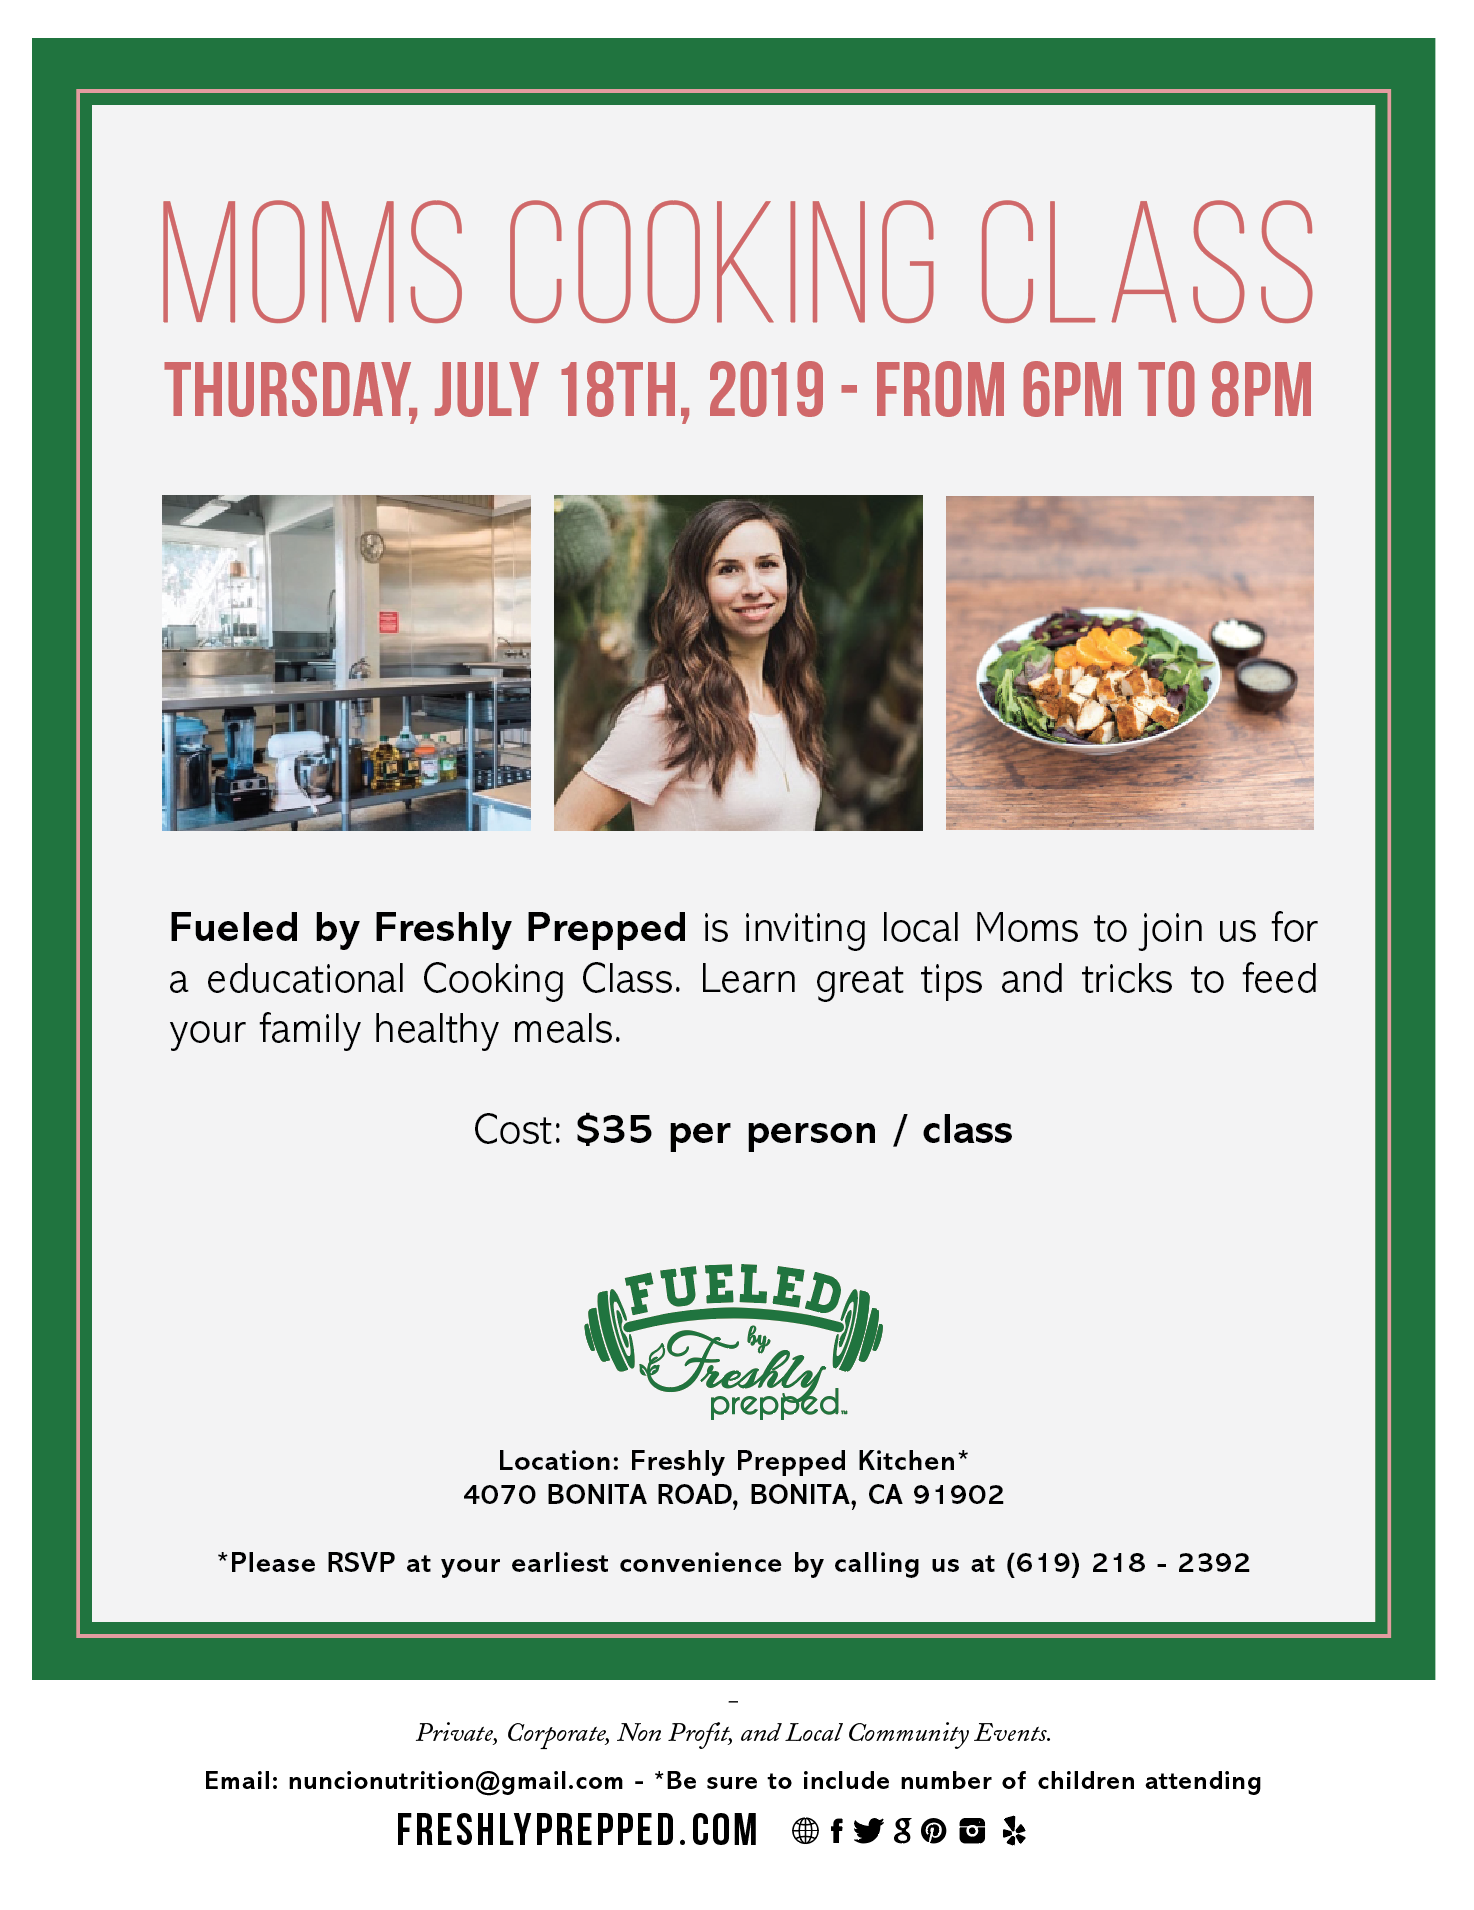 FP_MOMS_COOKING_CLASS